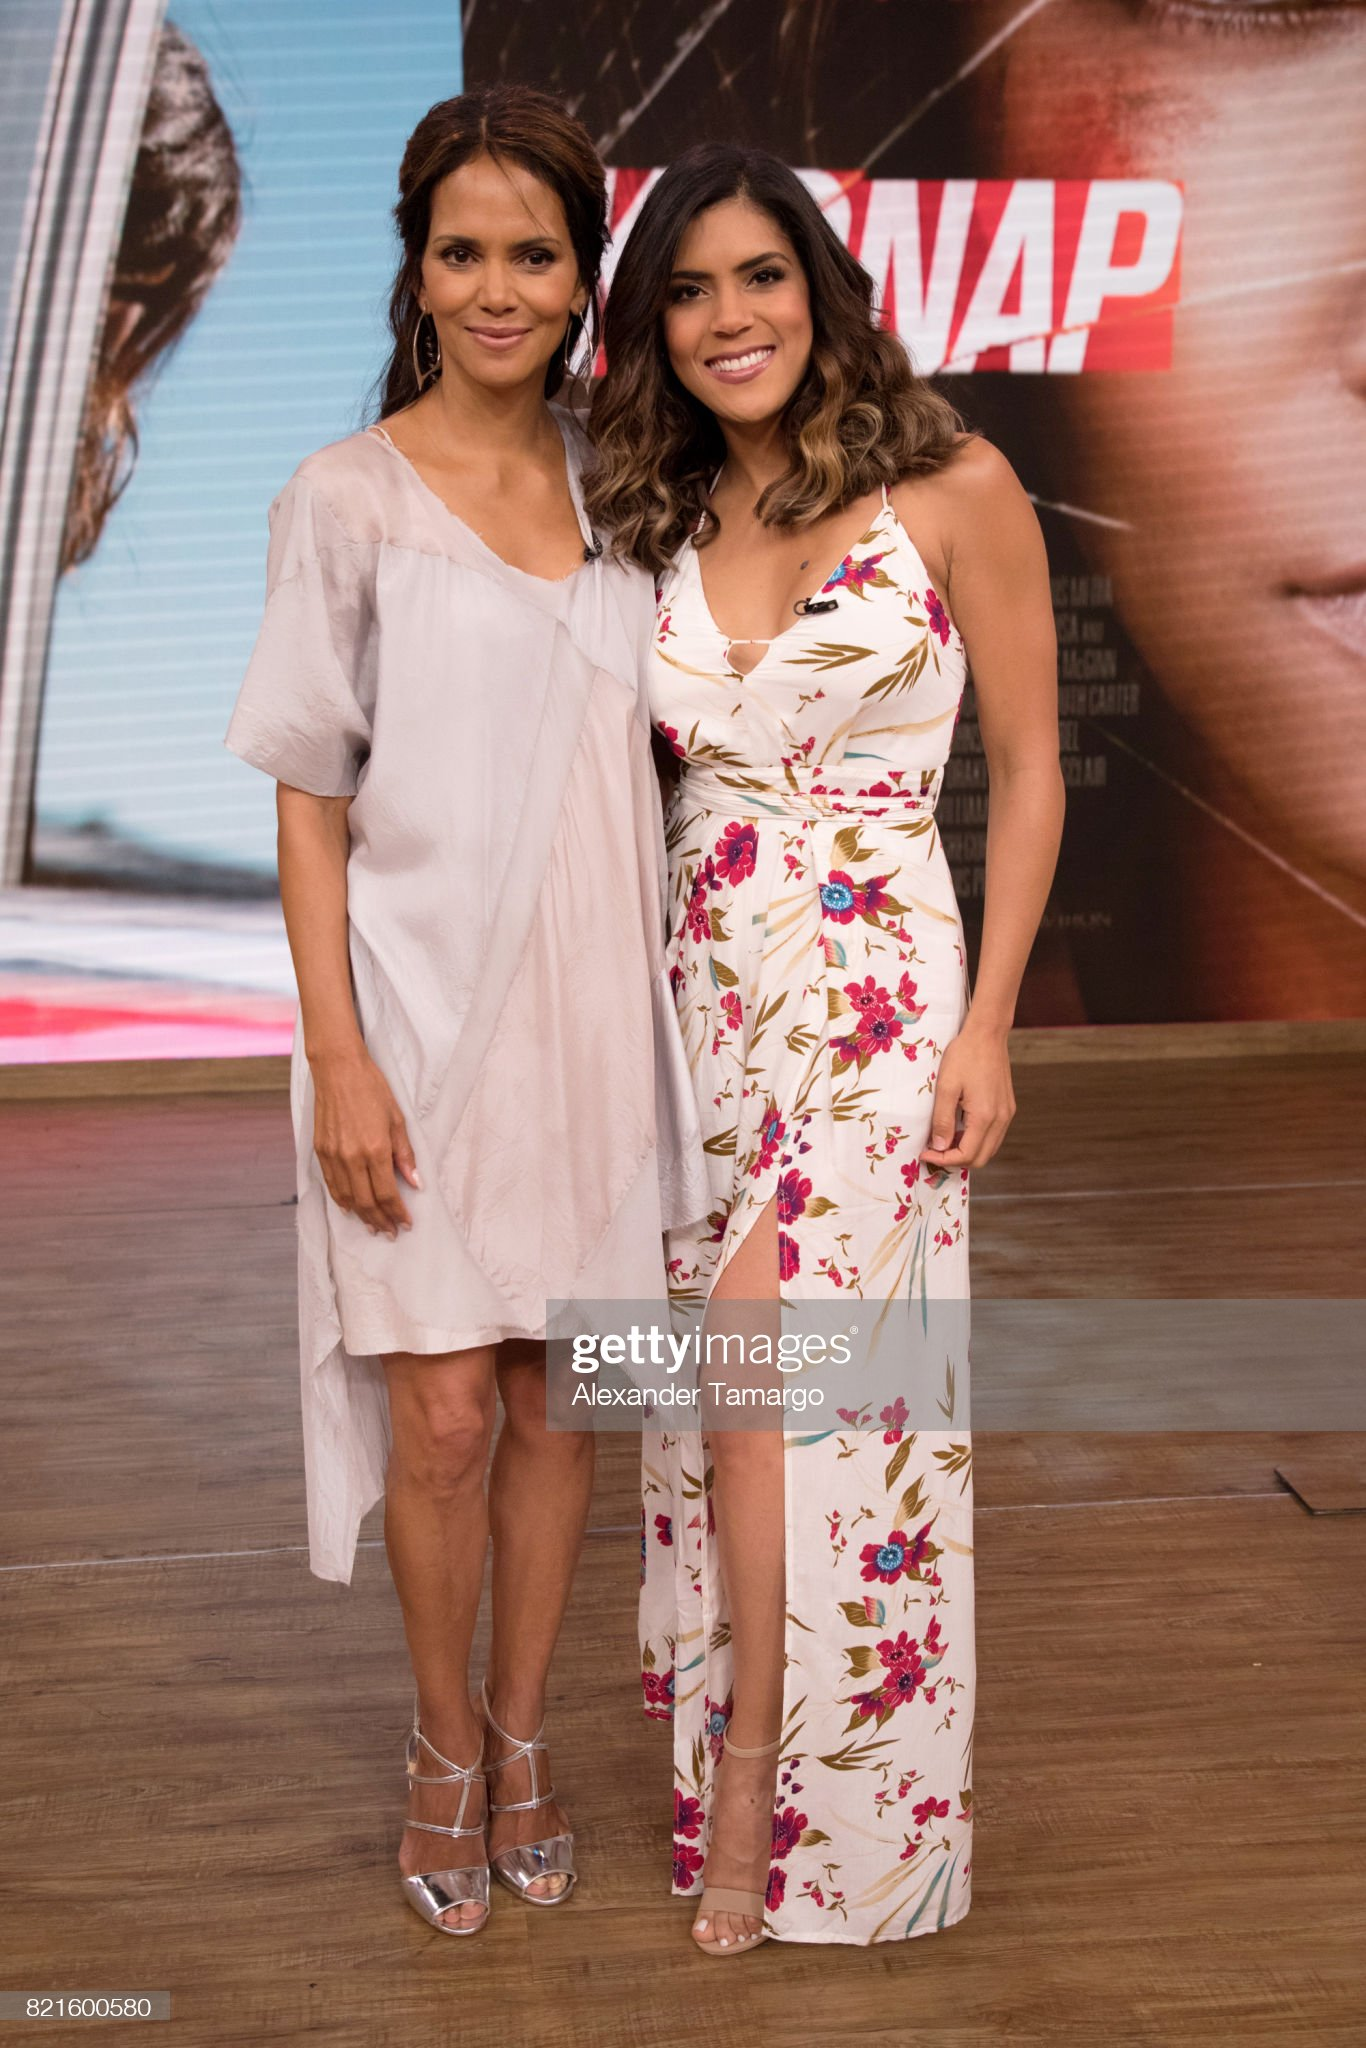 ¿Cuánto mide Halle Berry? - Real height Halle-berry-and-francisca-lachapel-are-seen-on-the-set-of-despierta-picture-id821600580?s=2048x2048